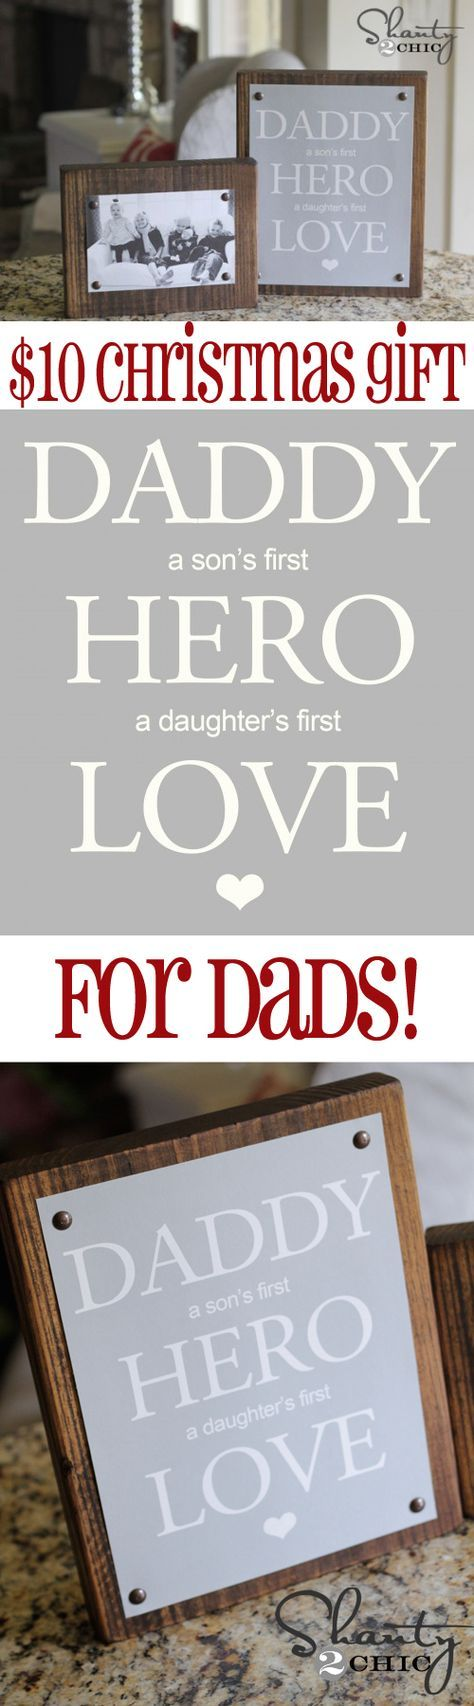 Christmas gift ideas dads daughters